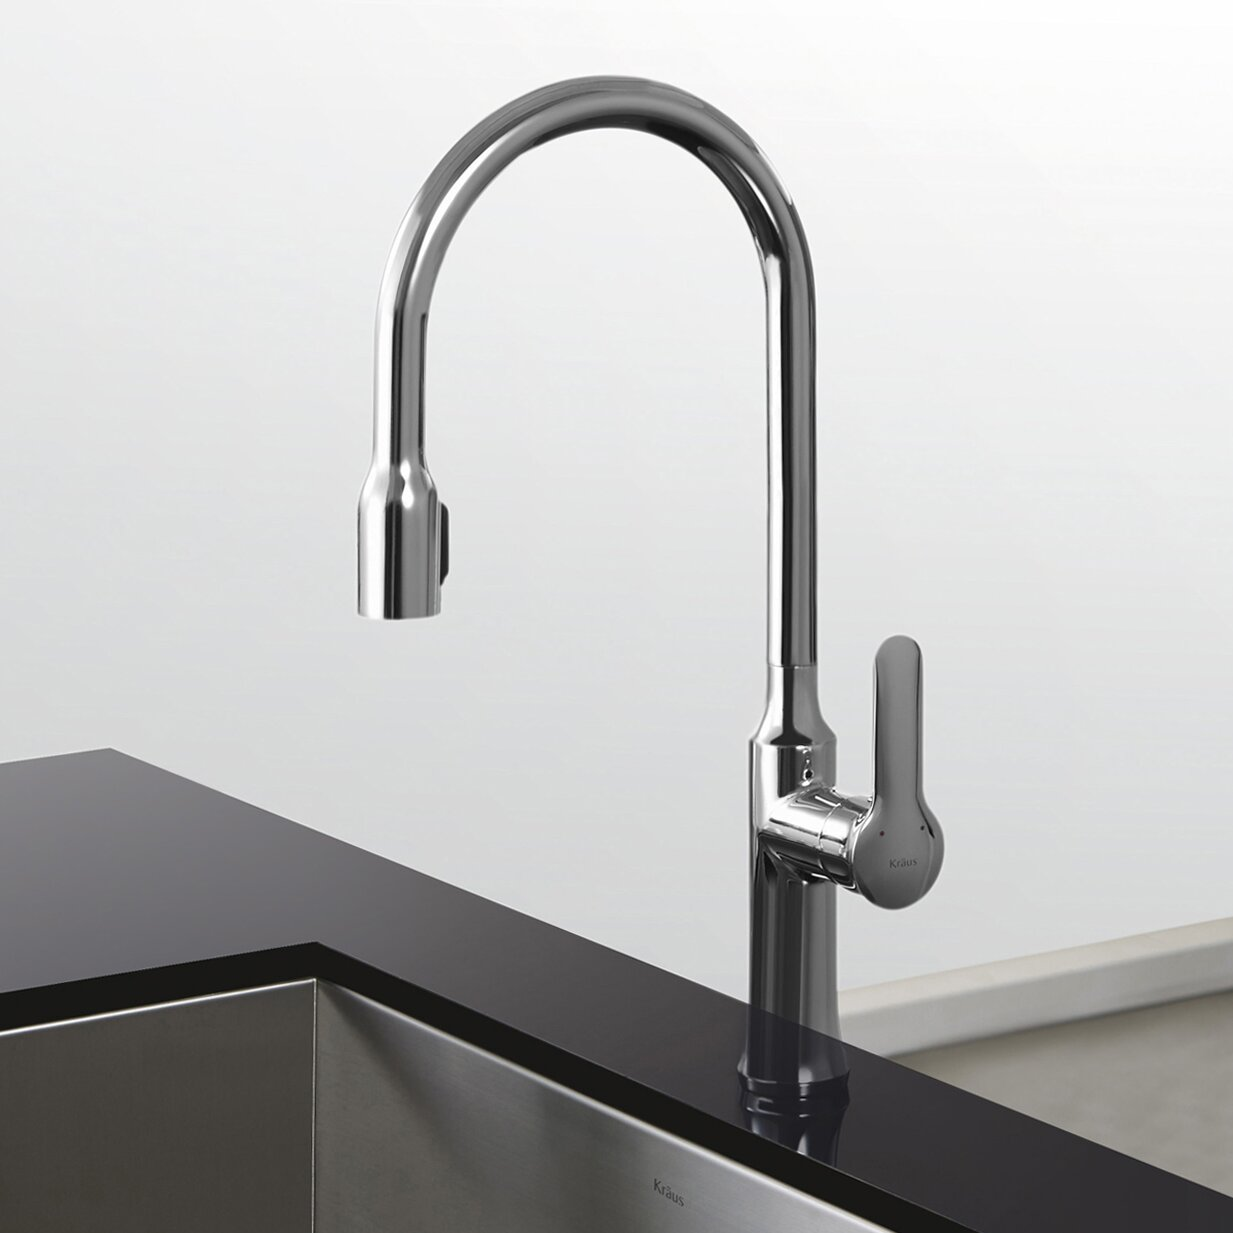 Kraus Faucets Reviews : Kraus Nola? Single Lever Concealed Pull Down Kitchen Faucet ...